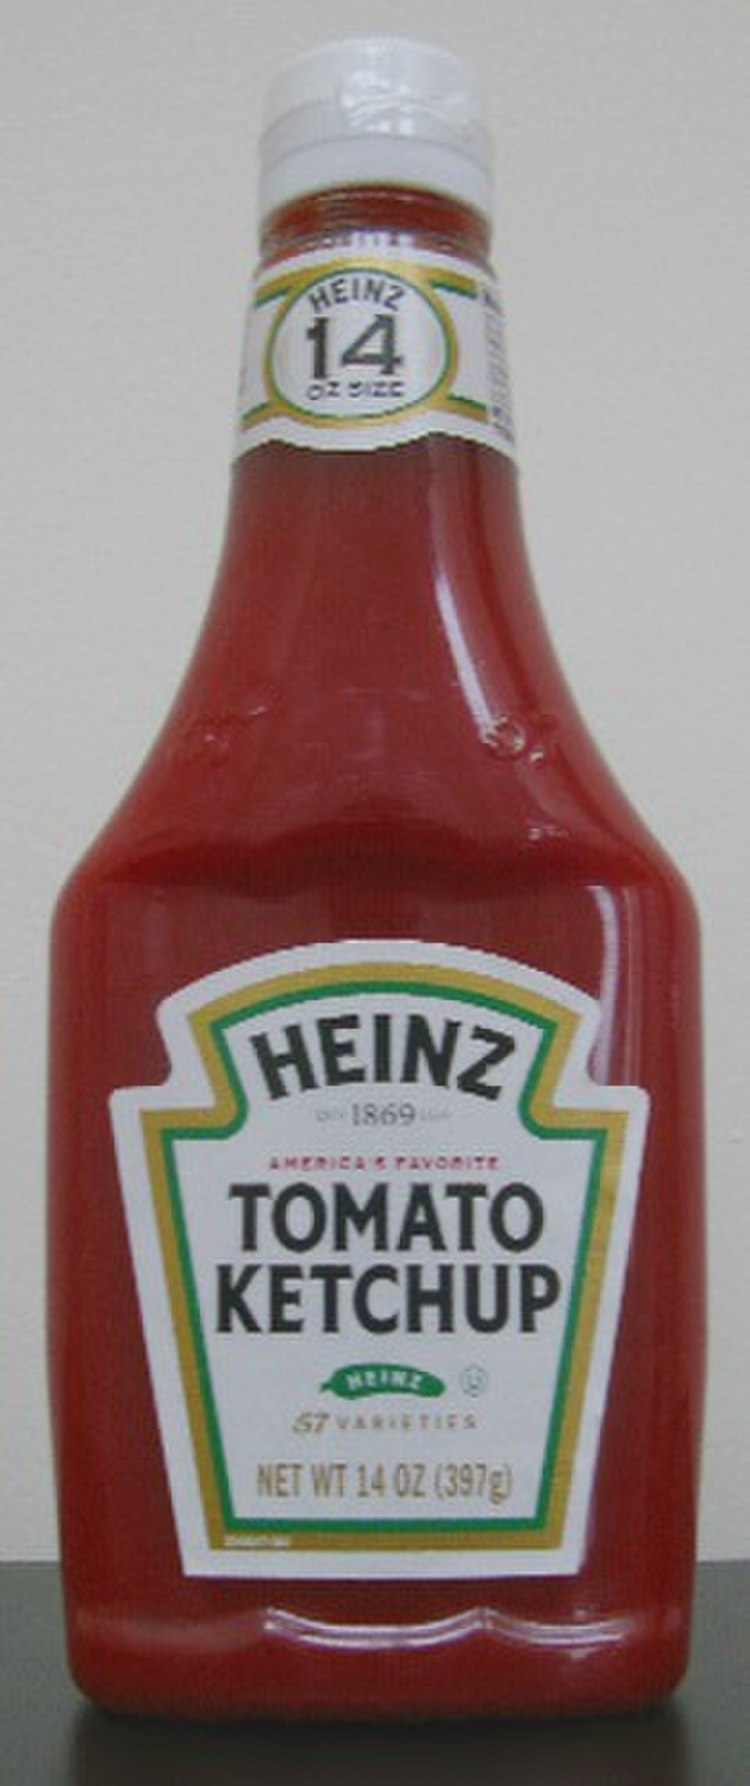 A bottle of Heinz Ketchup.